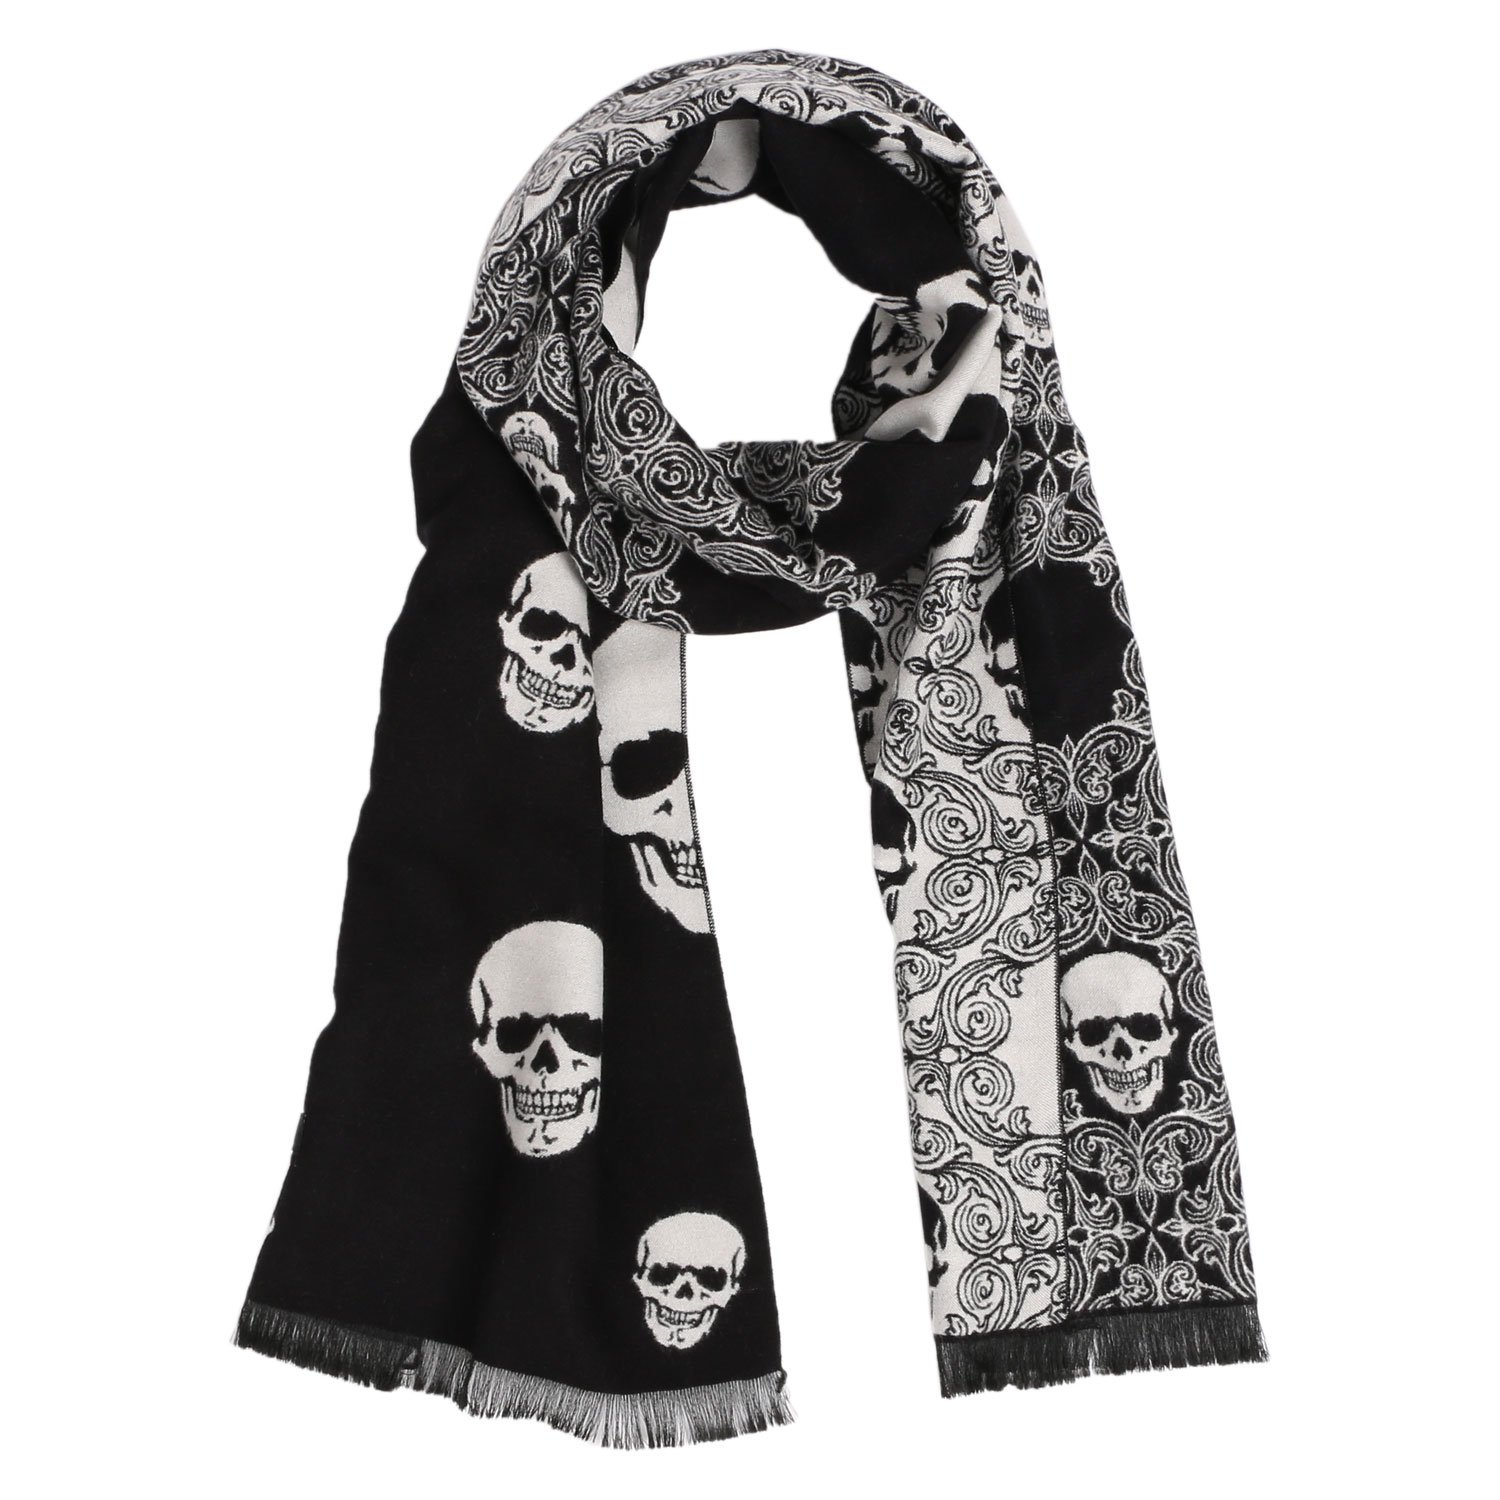 Landisun Scarf Shawl Skull Men's Winter Warm Long Soft Elegant Classical Tassels (Black White)